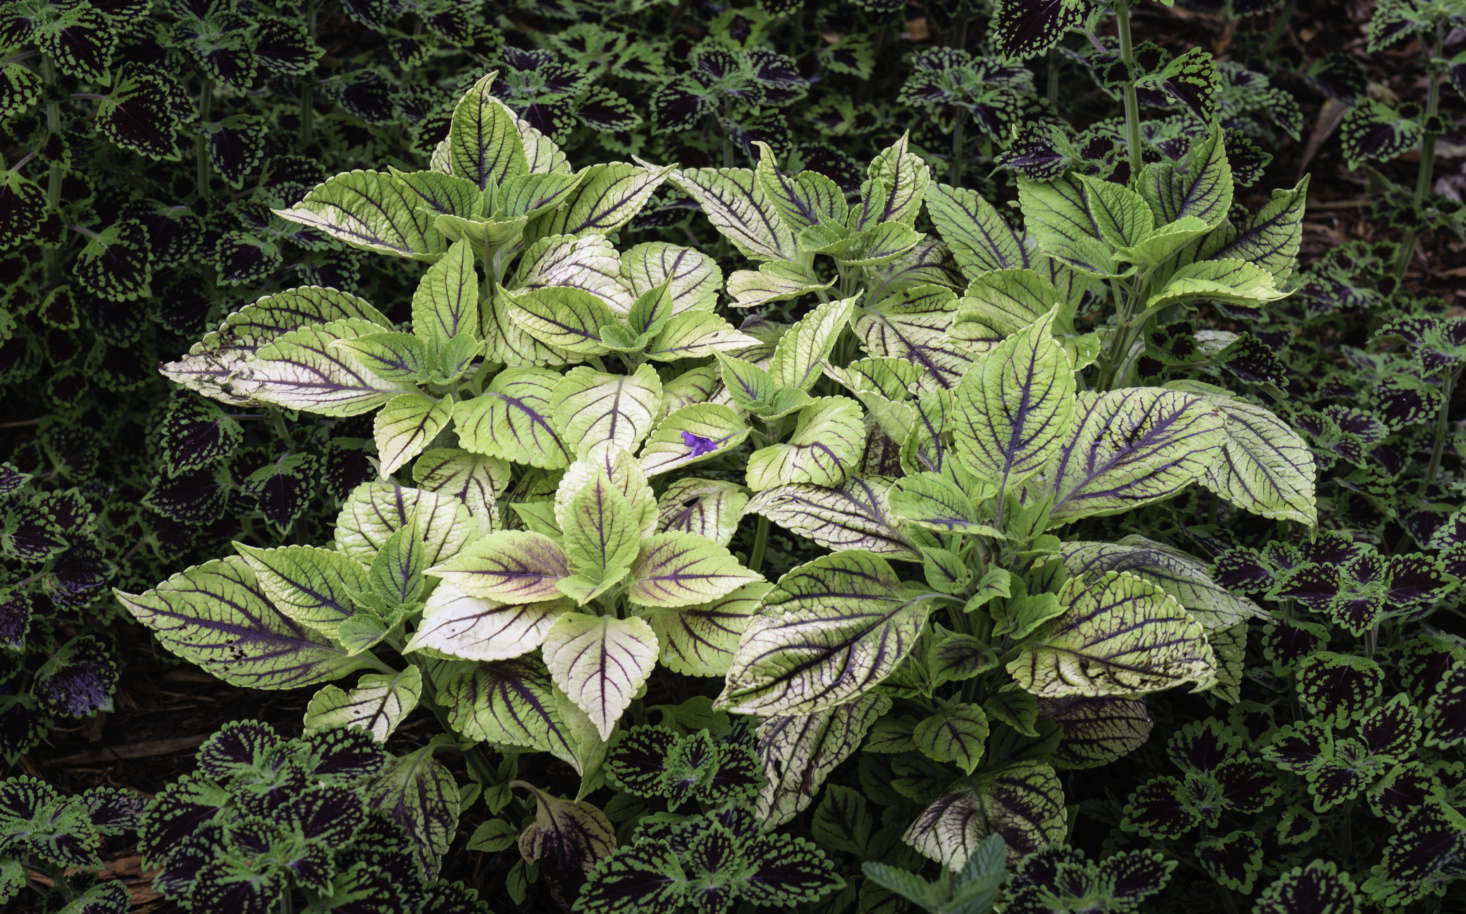 Two varieties of coleus complement each other in coloring and texture. Photograph by Puddin Tain via Flickr.